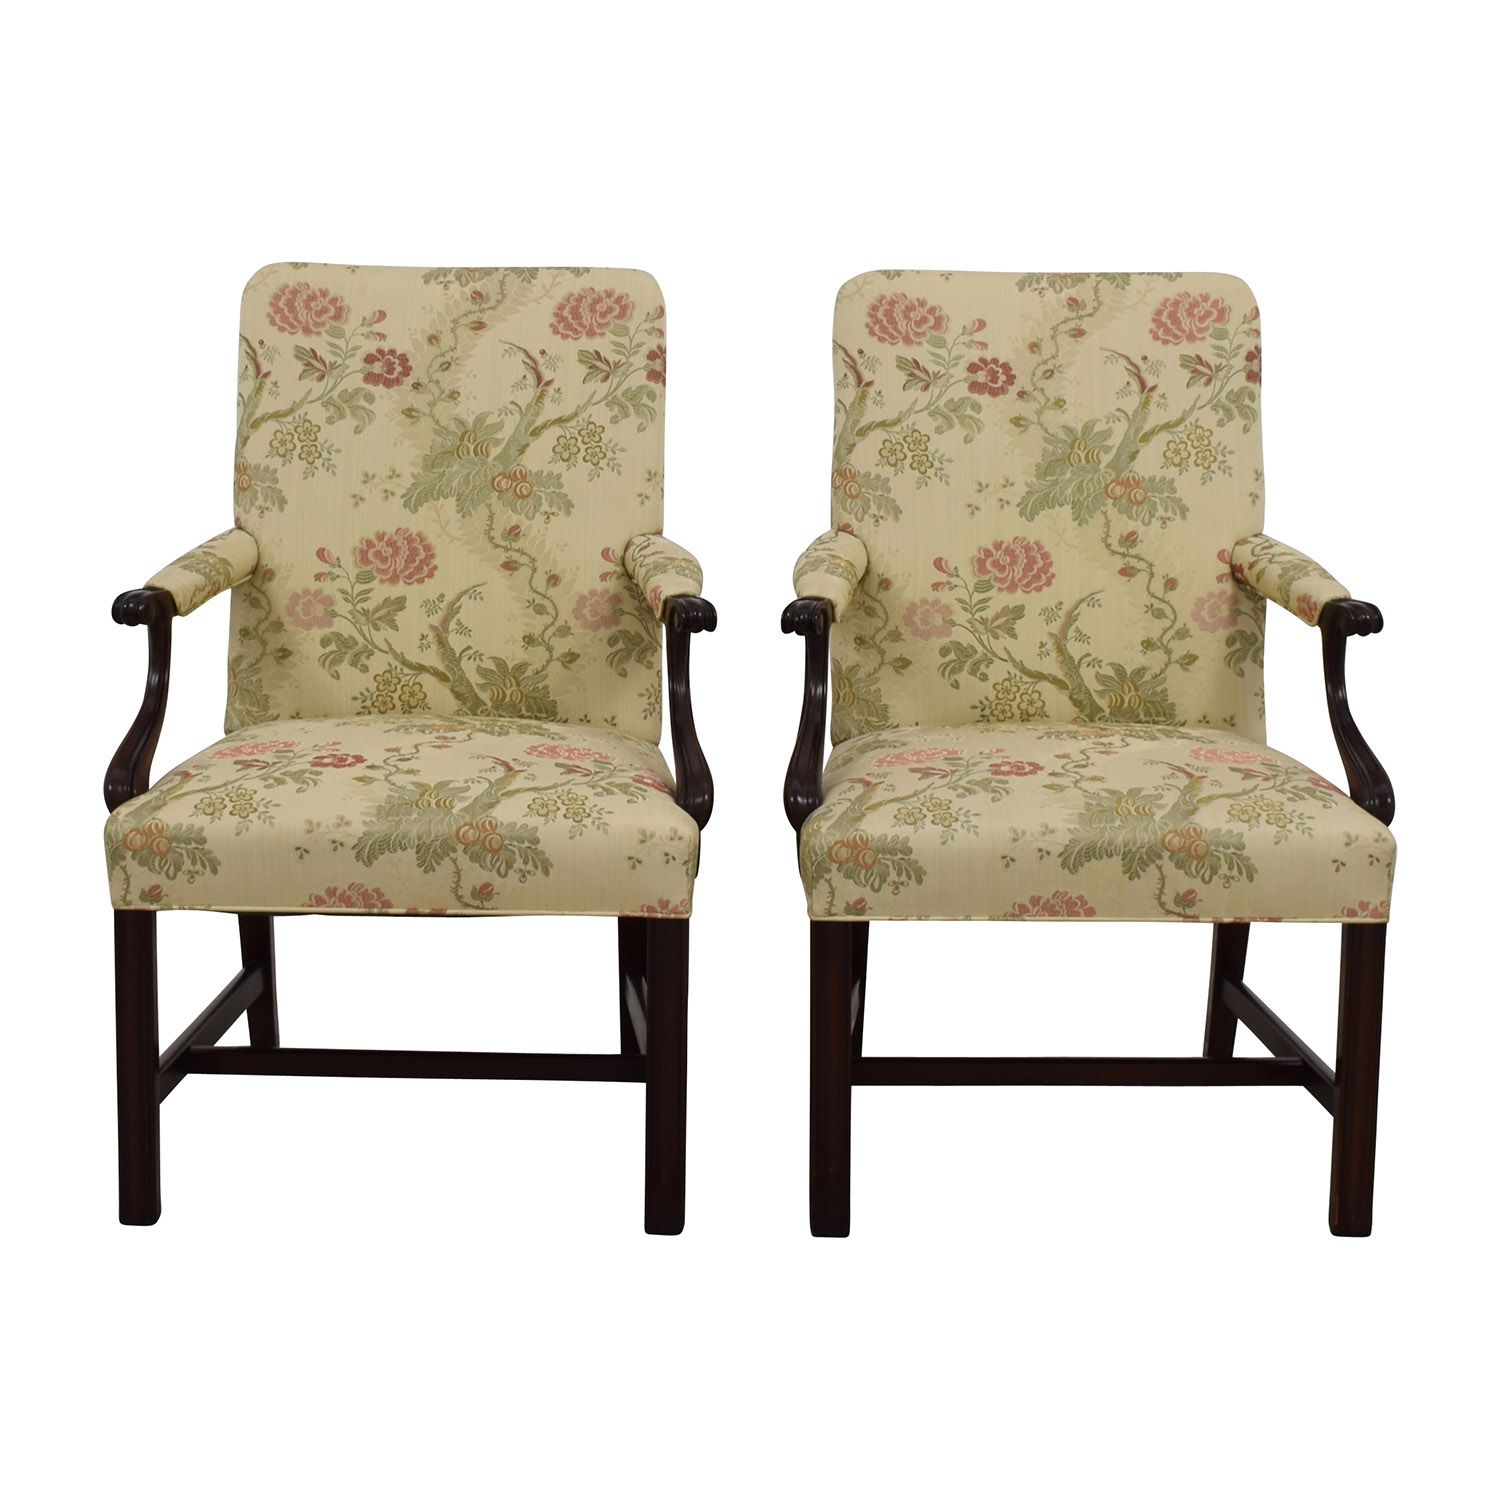 buy Traditional Upholstered Arm Chair, Set of Two online